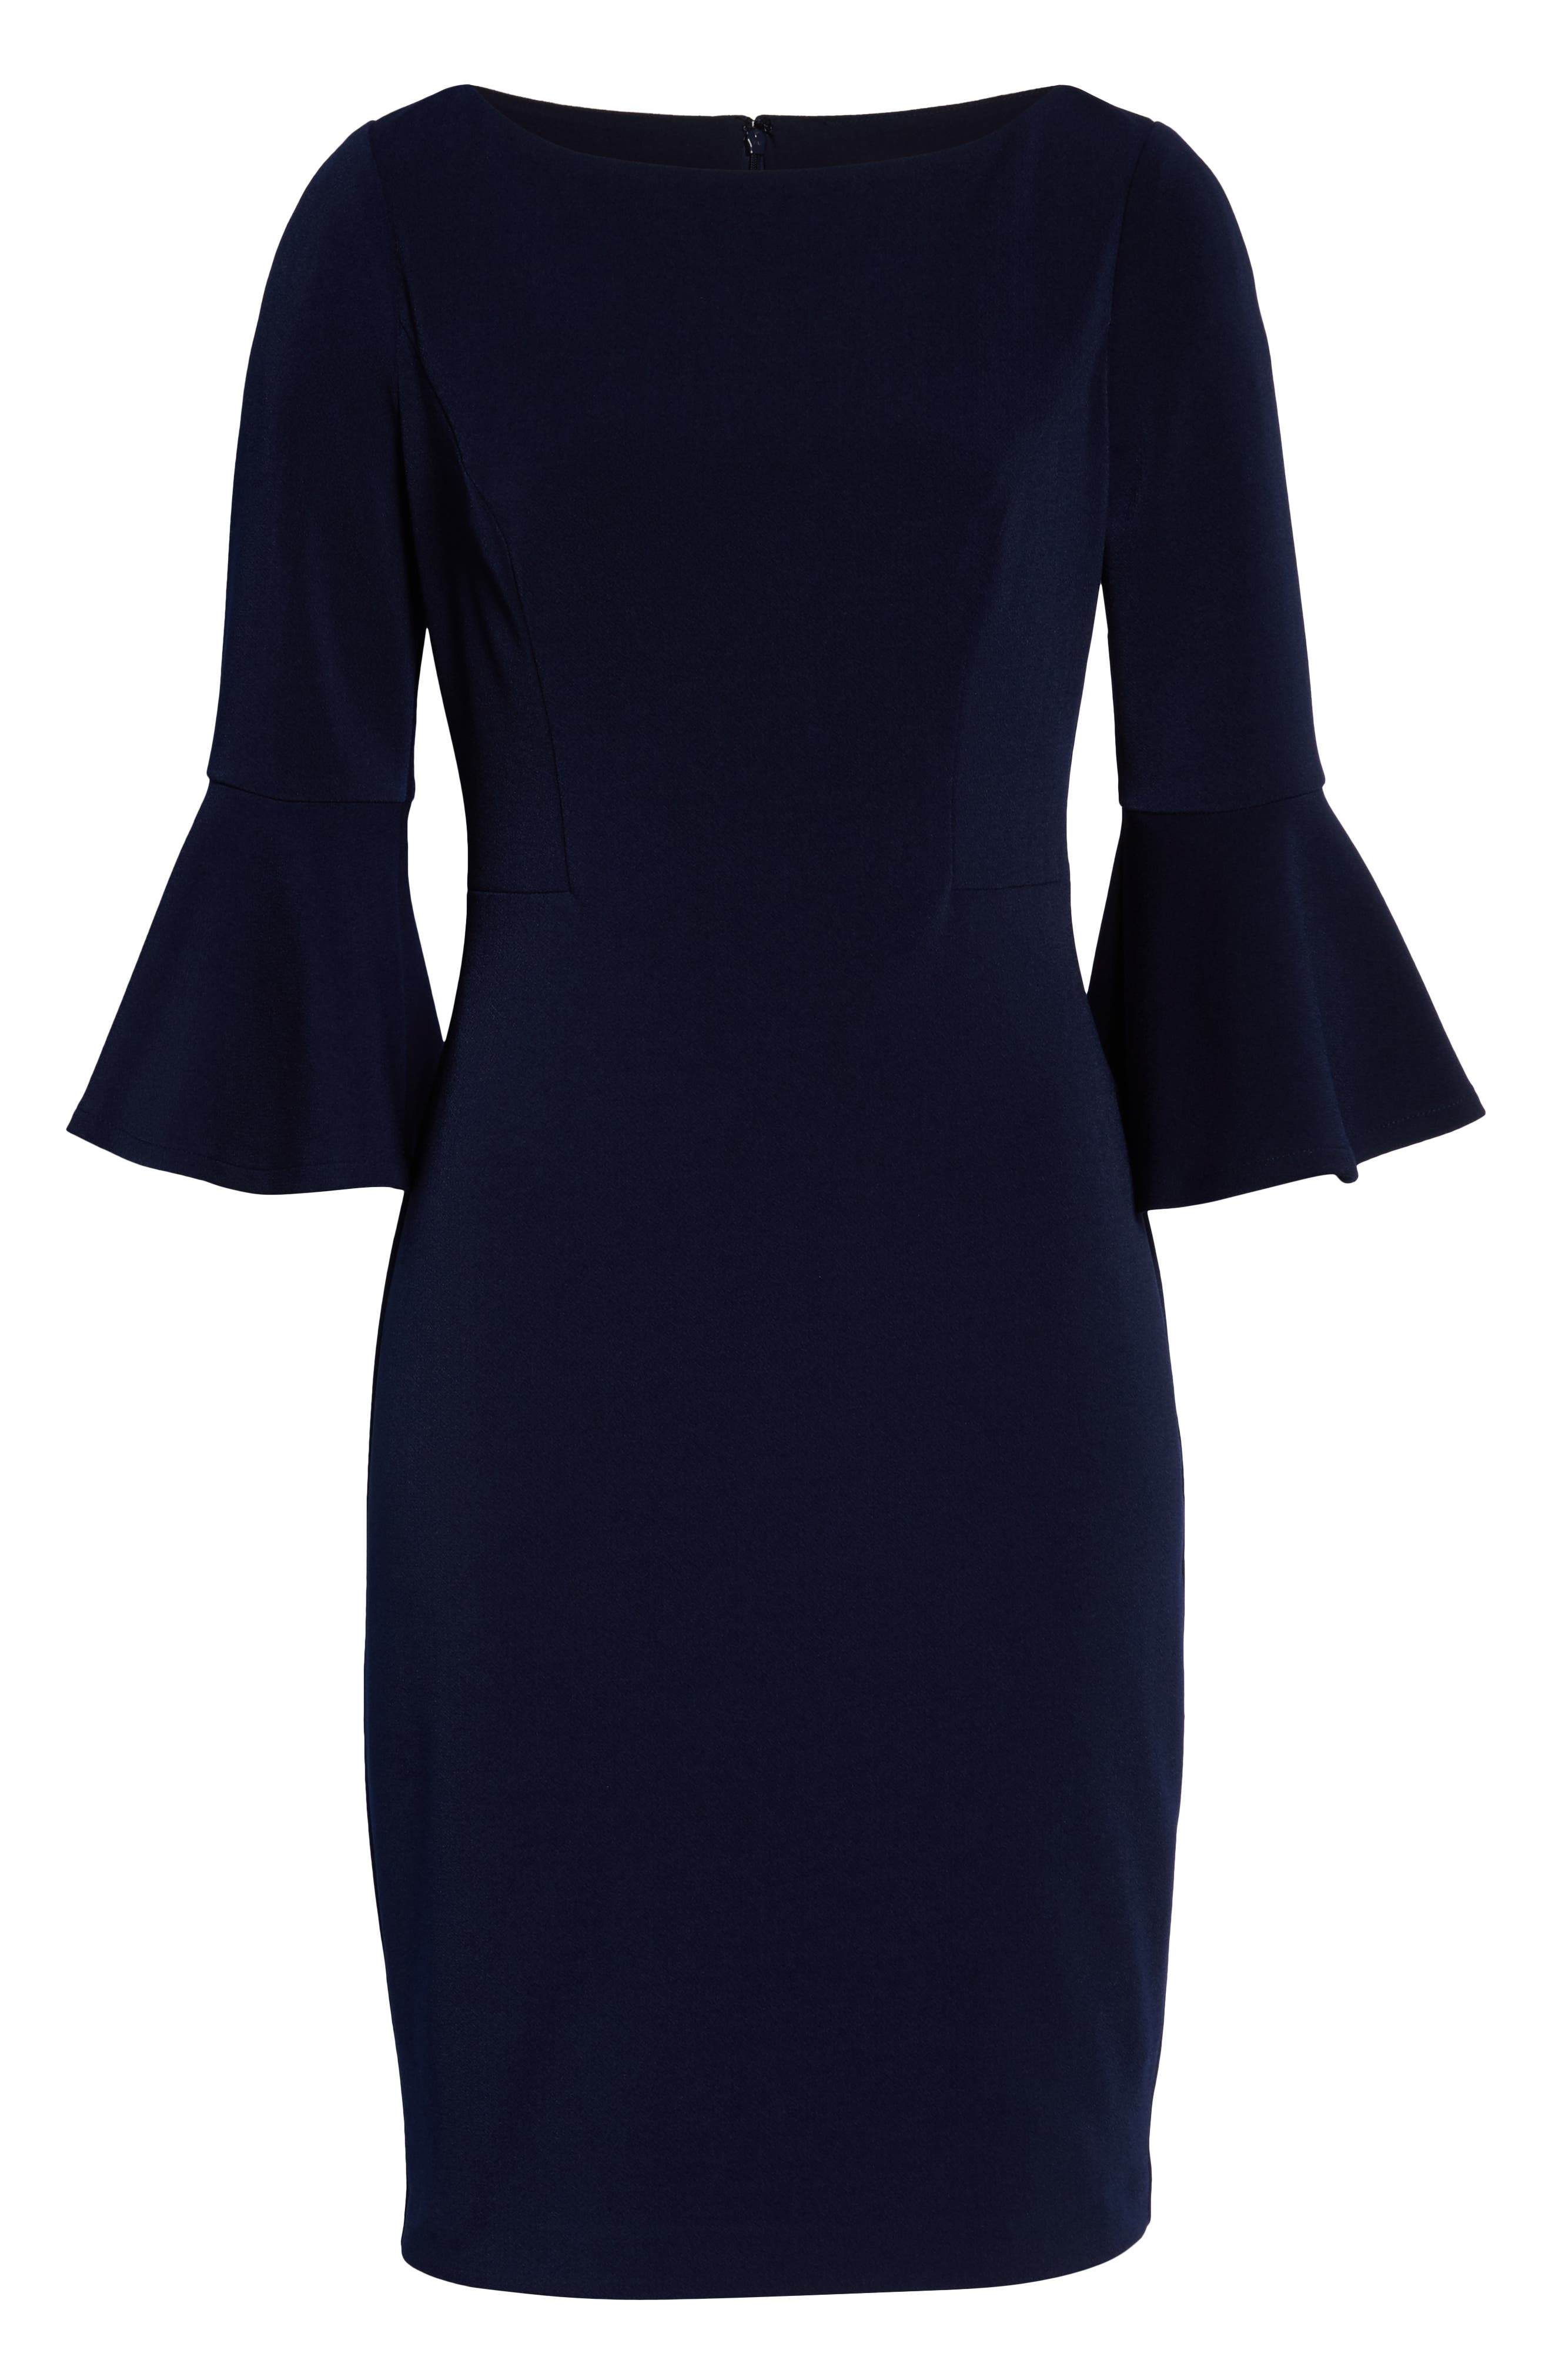 HARPER ROSE,                             Bell Sleeve Bateau Neck Sheath Dress,                             Alternate thumbnail 7, color,                             NAVY